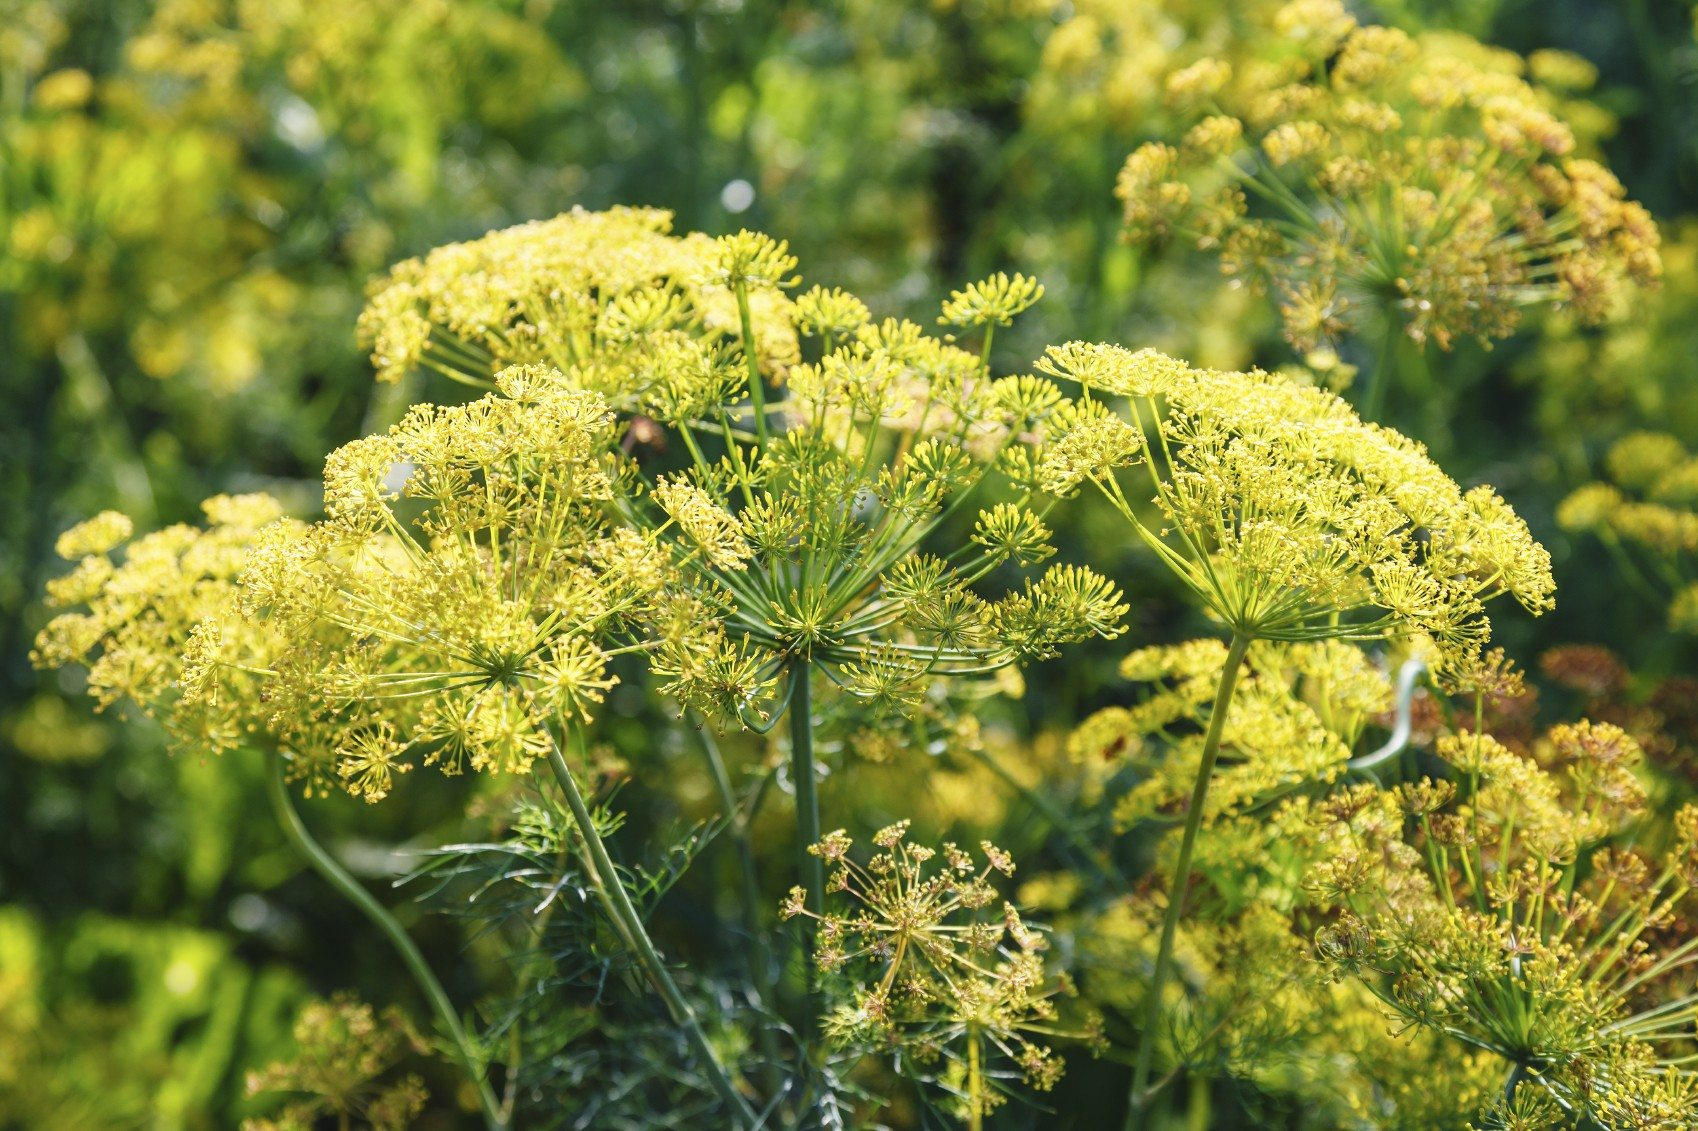 My Dill Plant Is Flowering Information About Flowering In Dill Plants